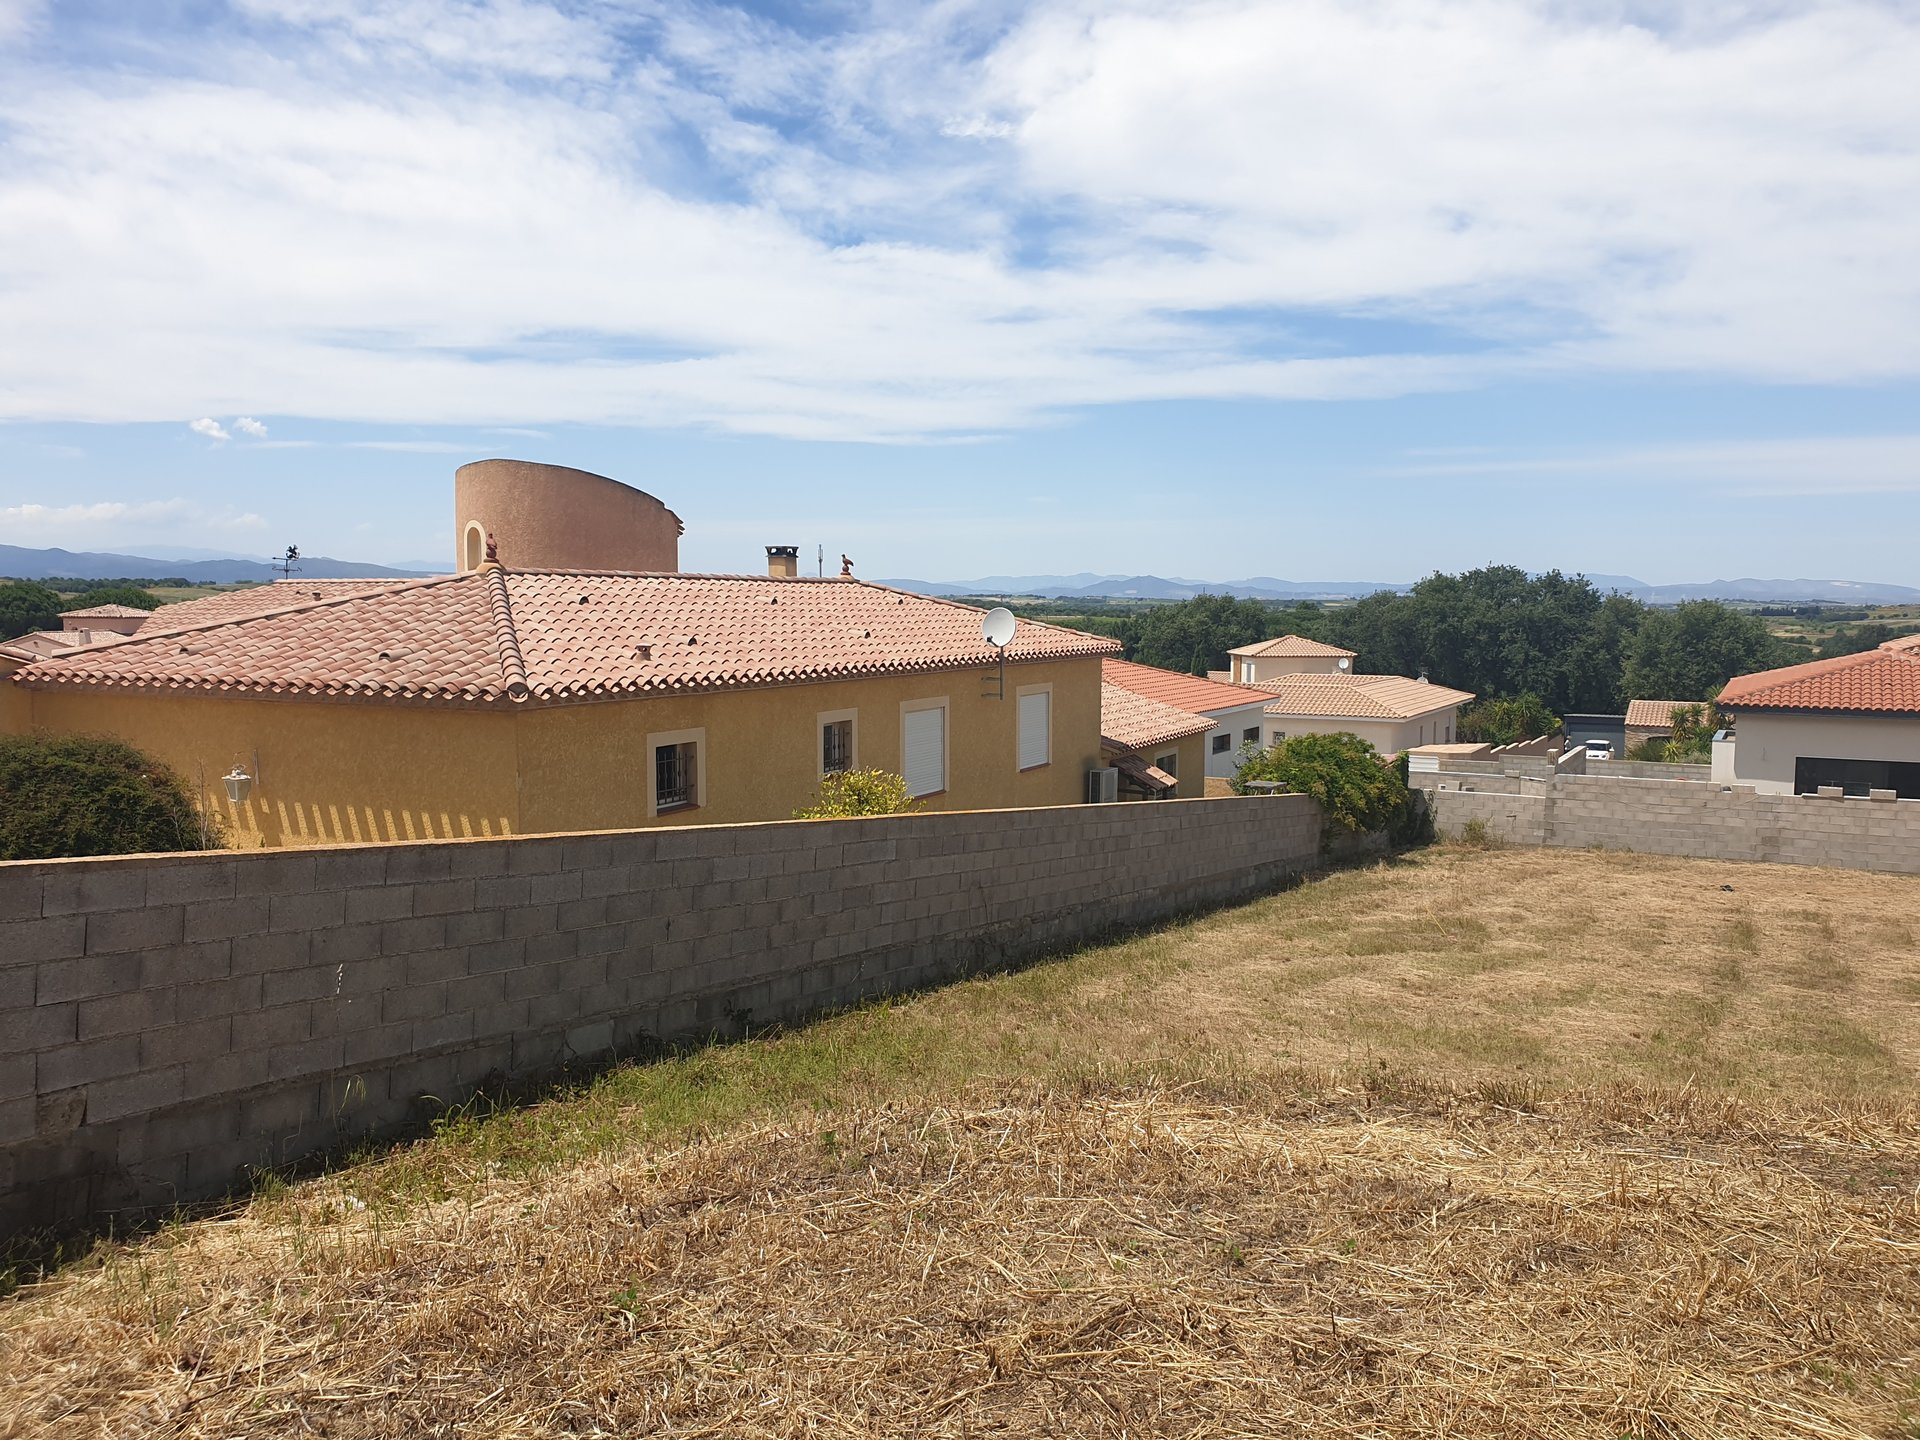 Sale Building land - Banyuls-dels-Aspres